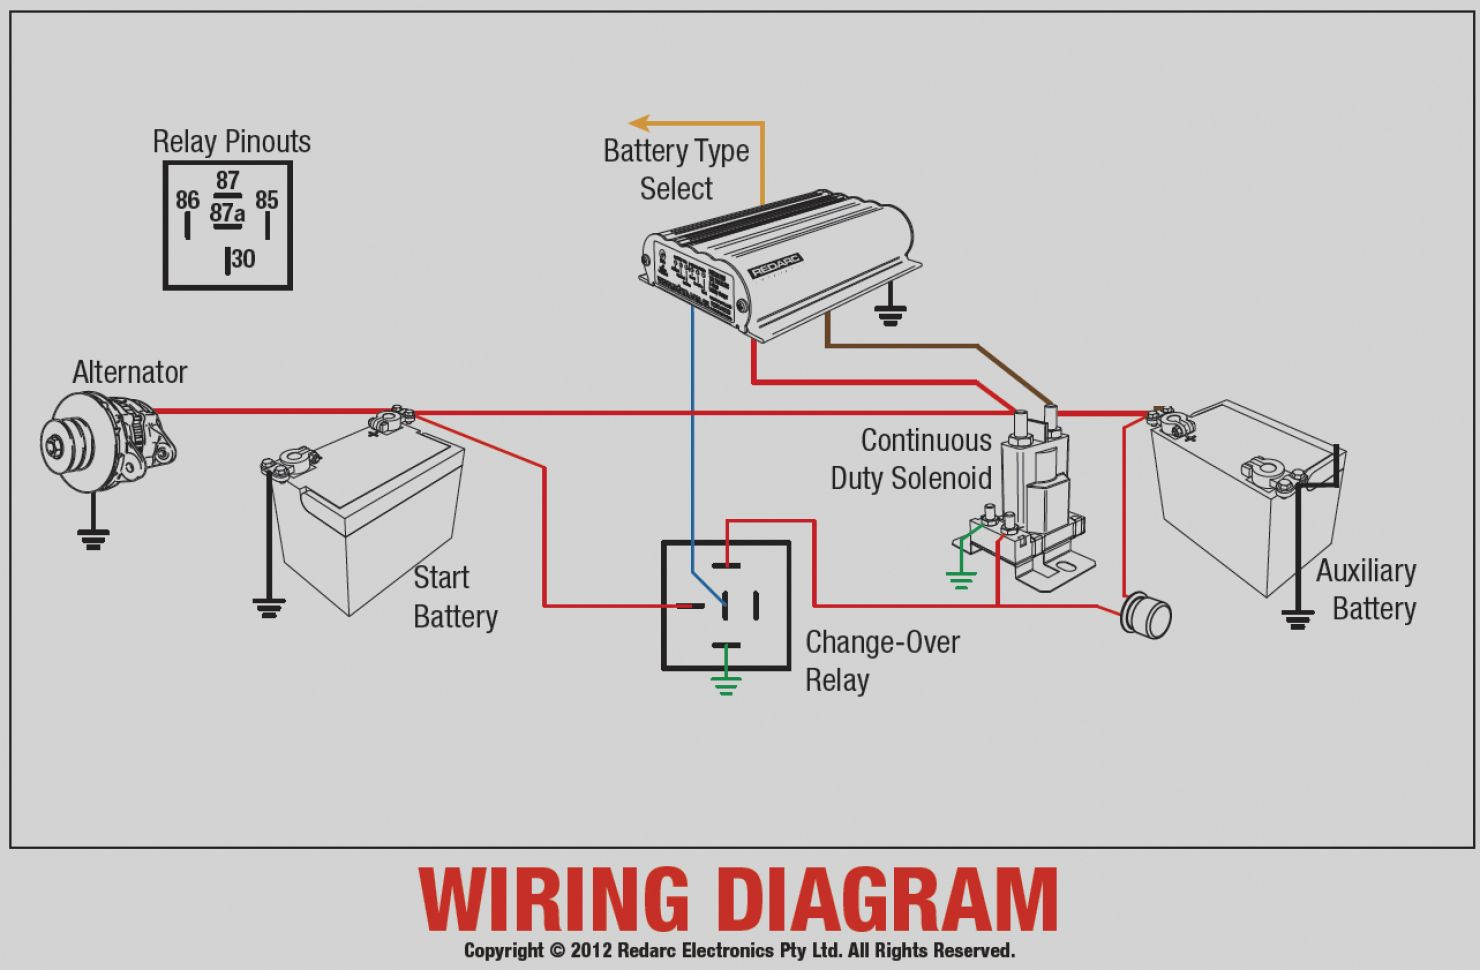 Fise Wiring Diagram 78 Chevy Truck Library. Latest Red Arc Dual Battery System Wiring Diagram Redarc Bcdc1225lv Chevy Truck. Chevrolet. Chevy Truck Dual Battery Wiring At Scoala.co